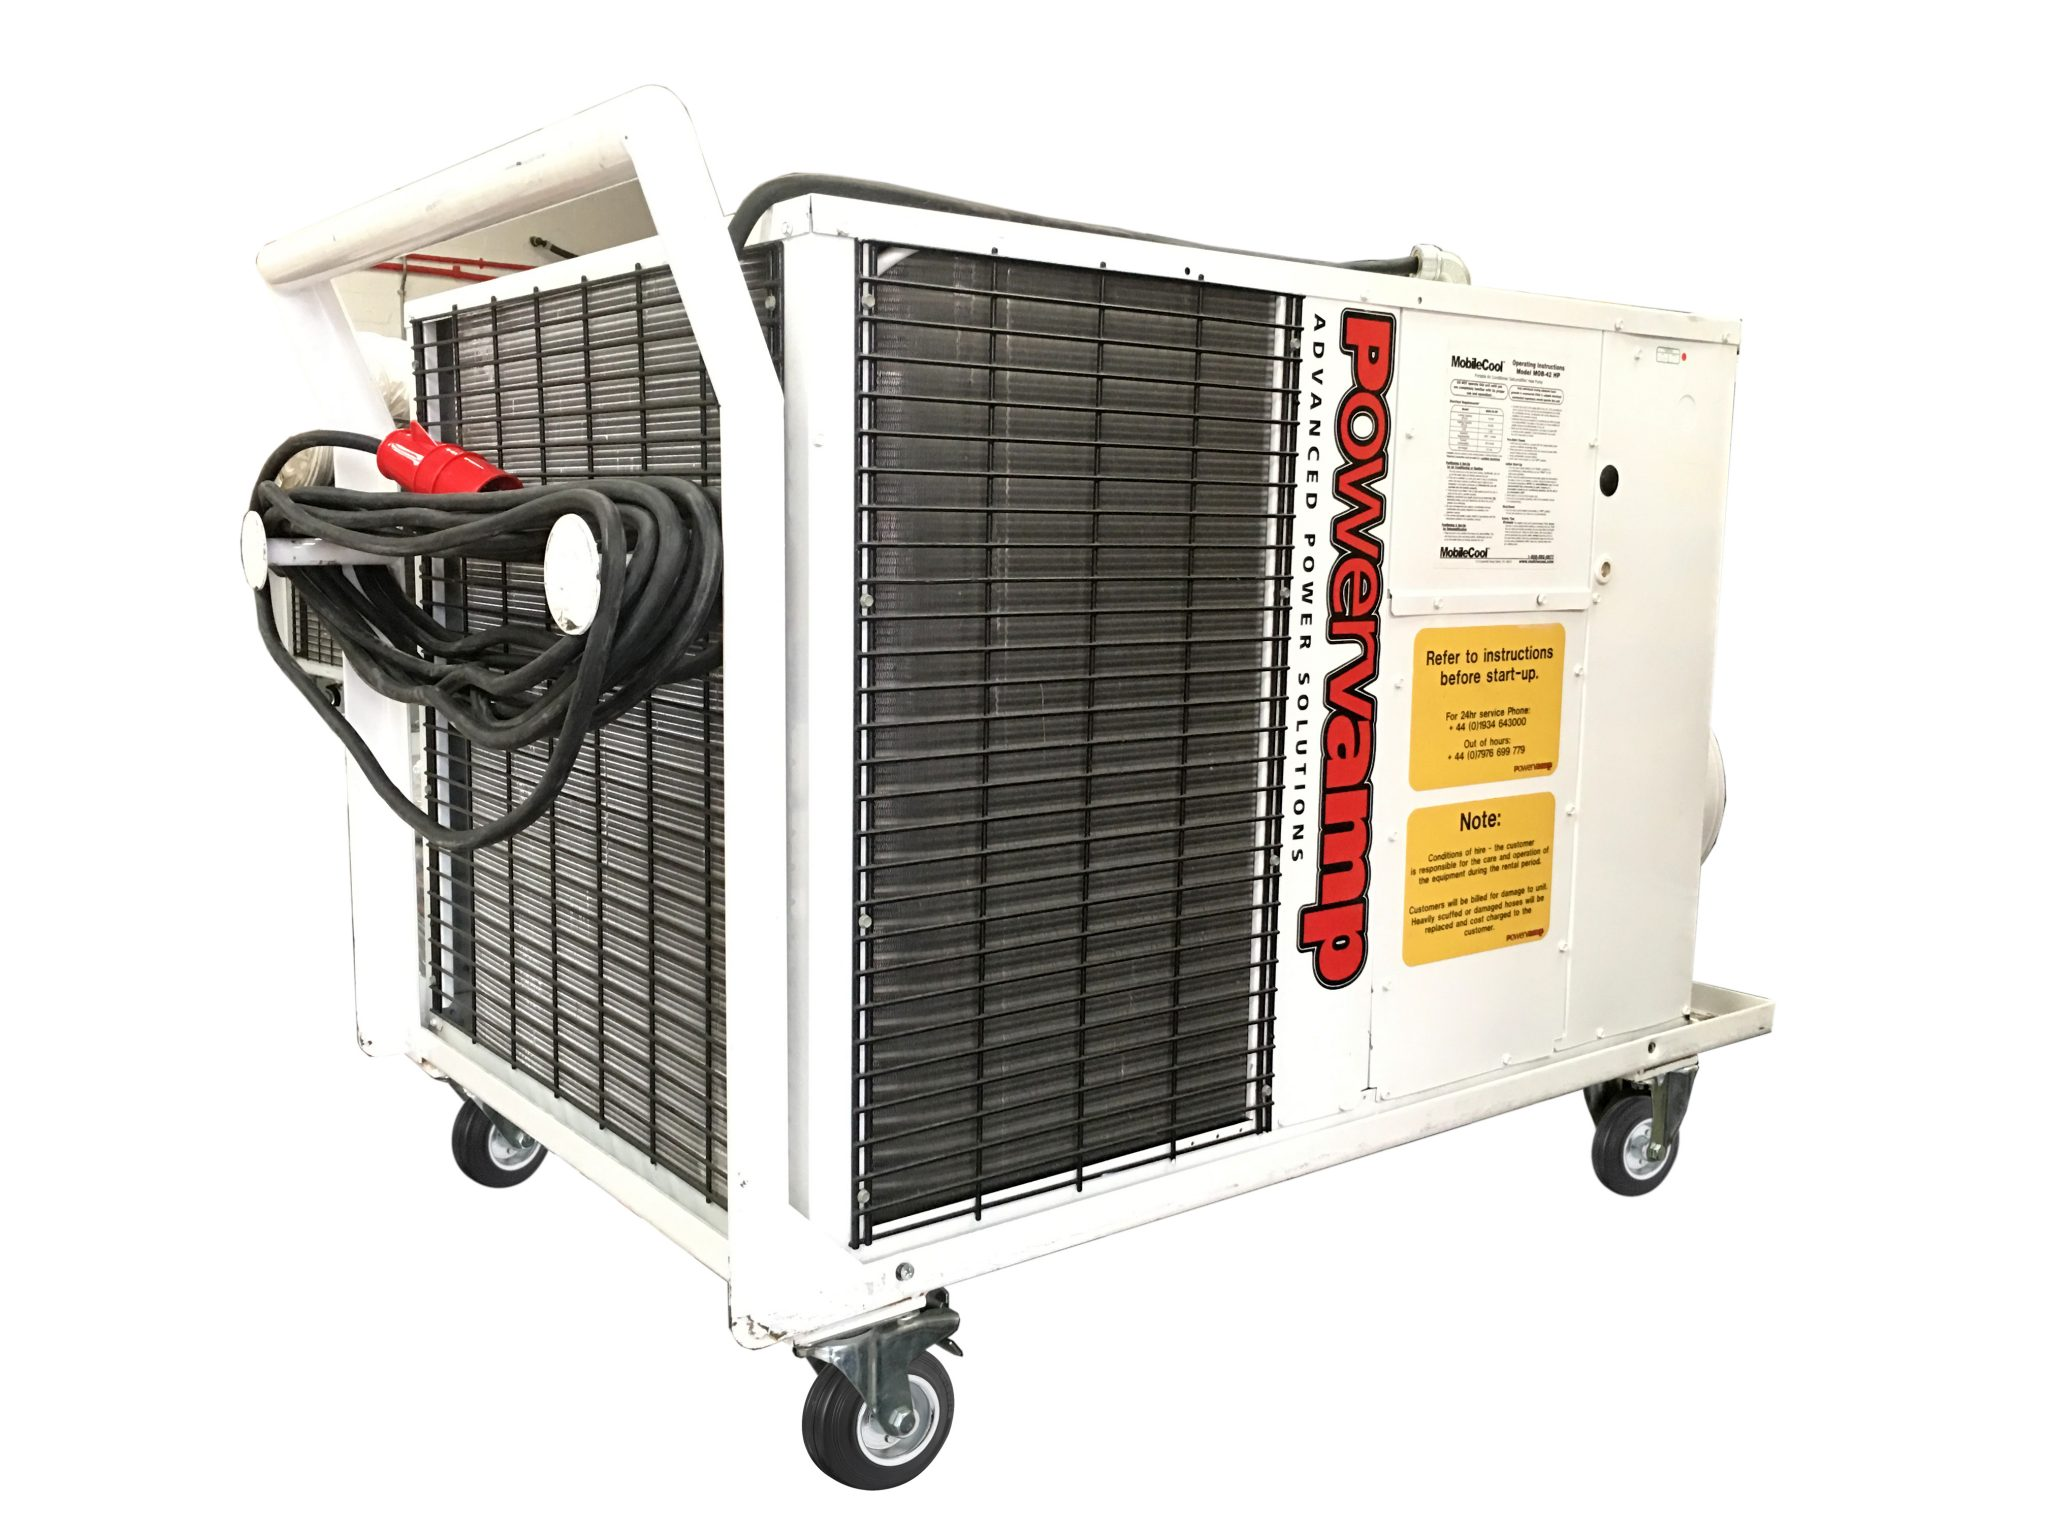 Coolers<br/><small>3 Tonne Portable Air-Conditioning Unit</small>